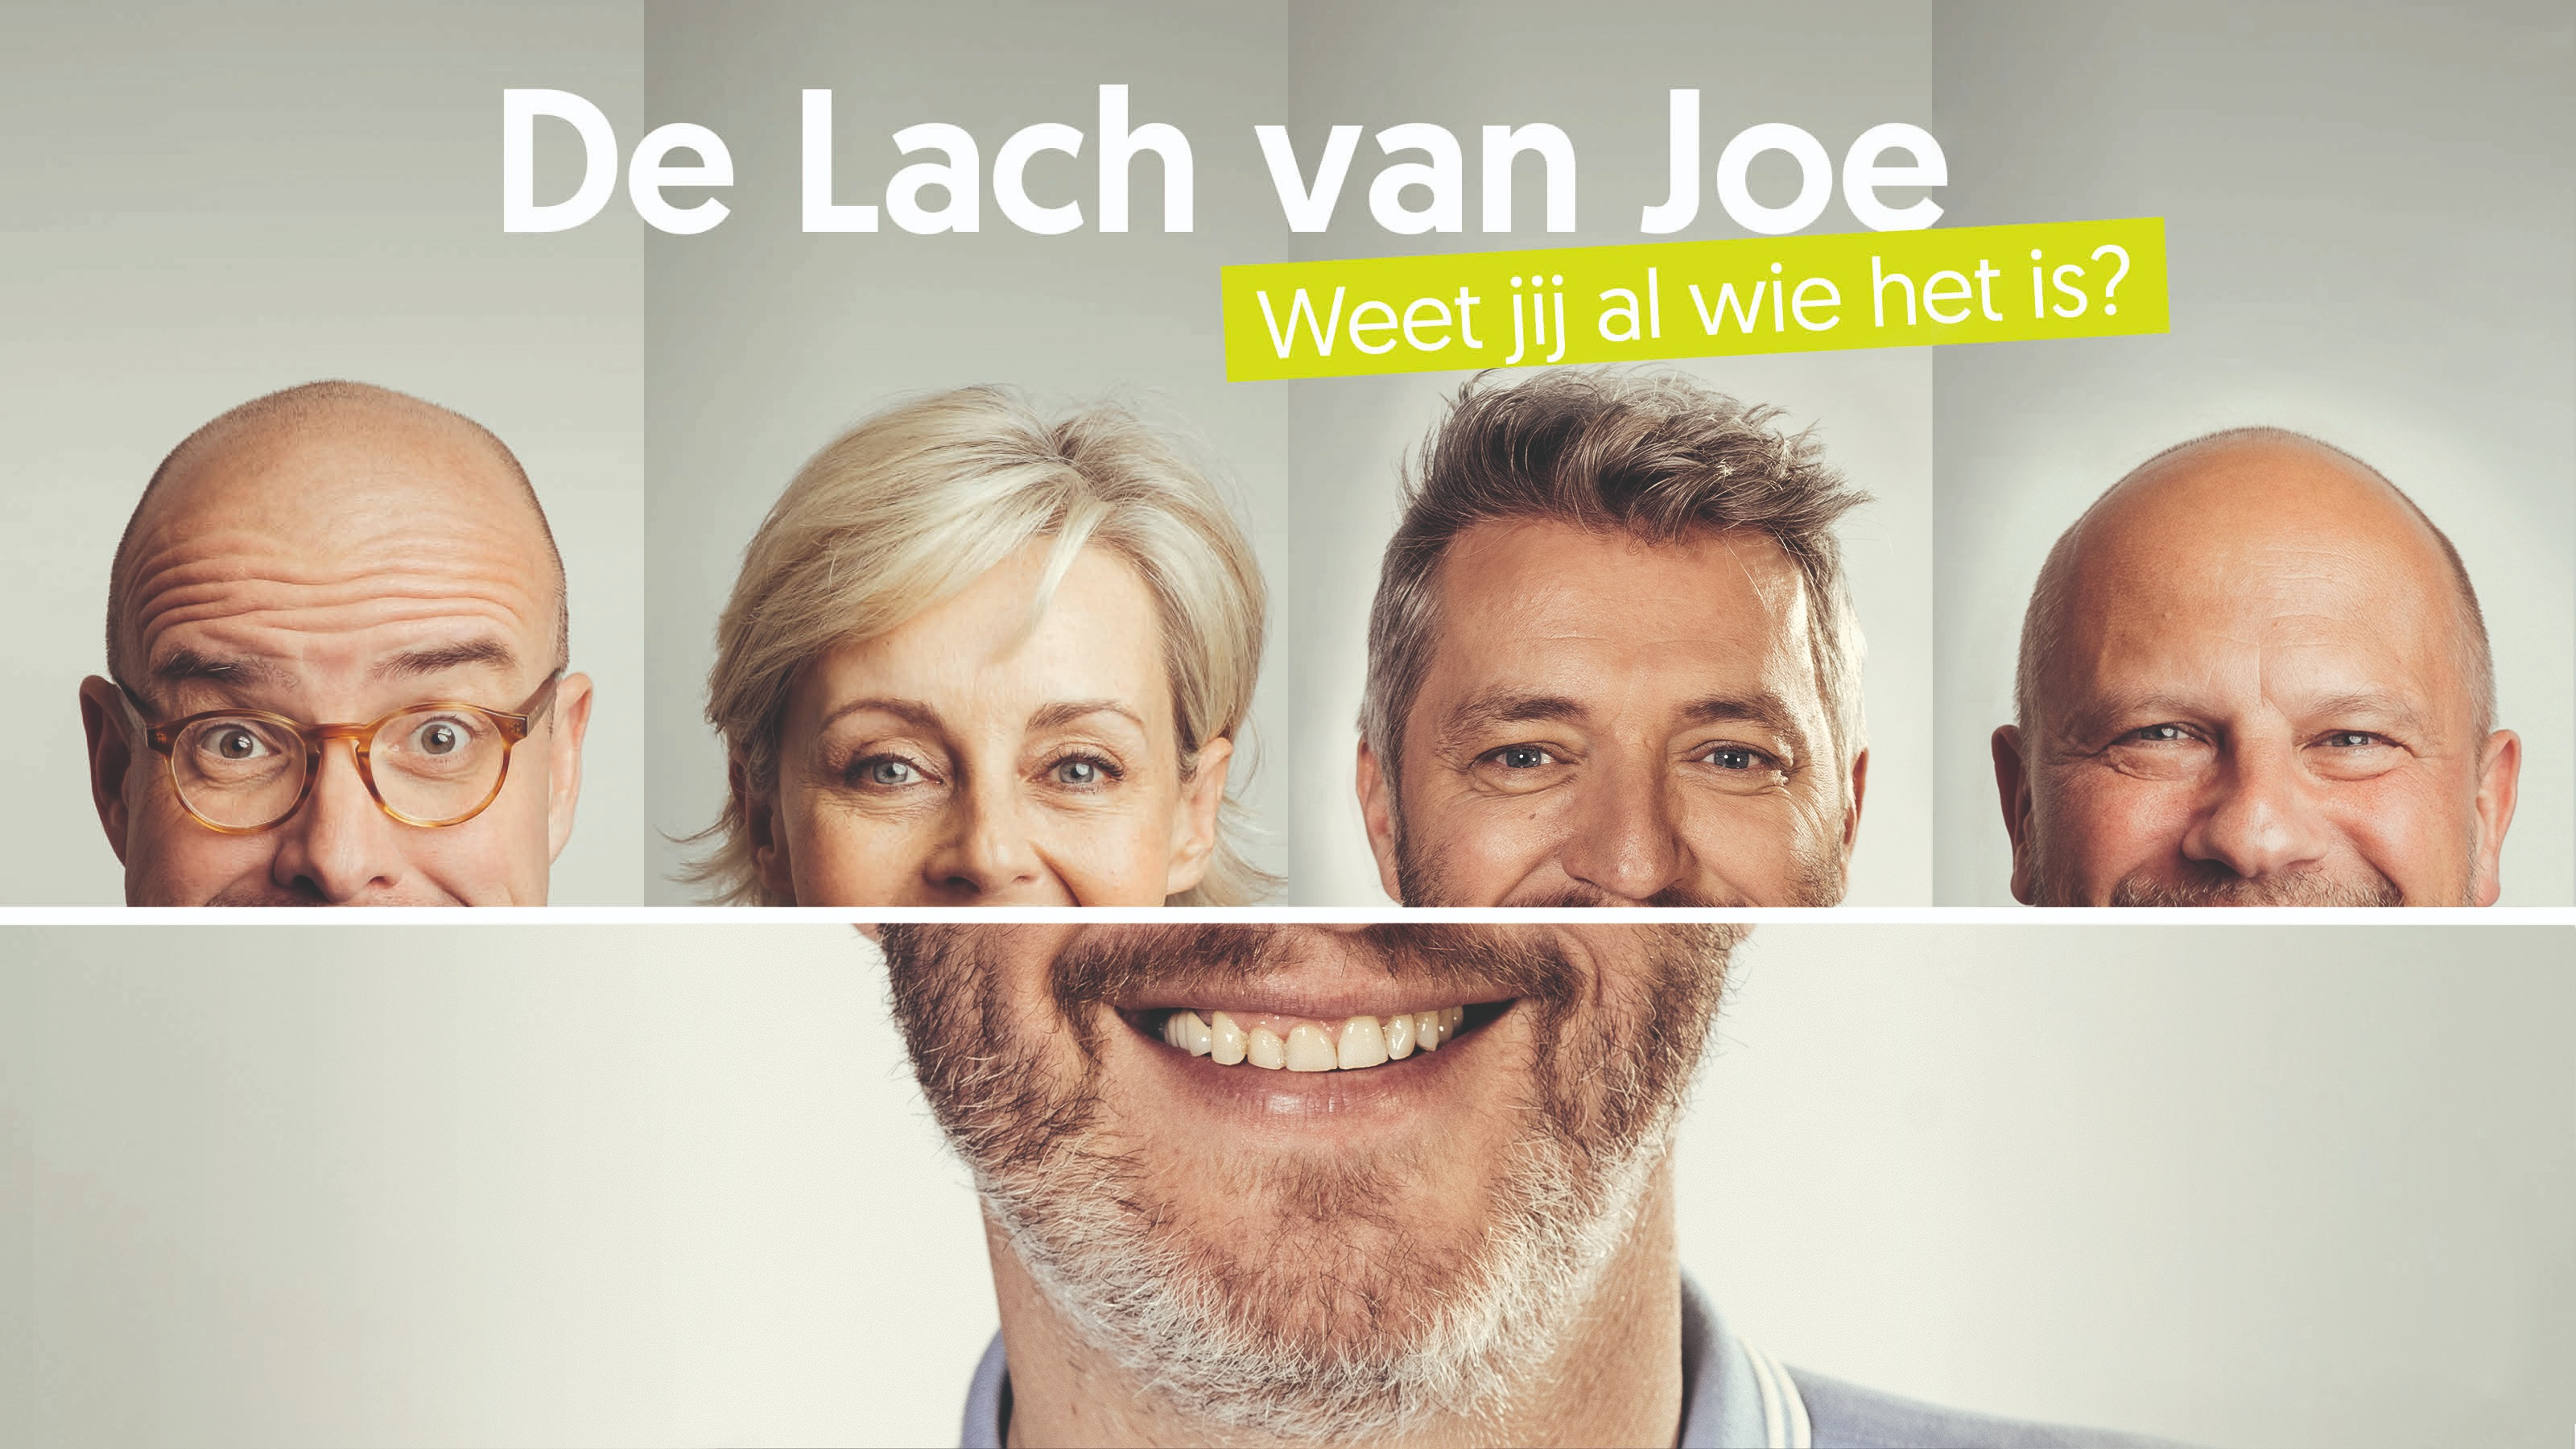 De lach van joe visual 02